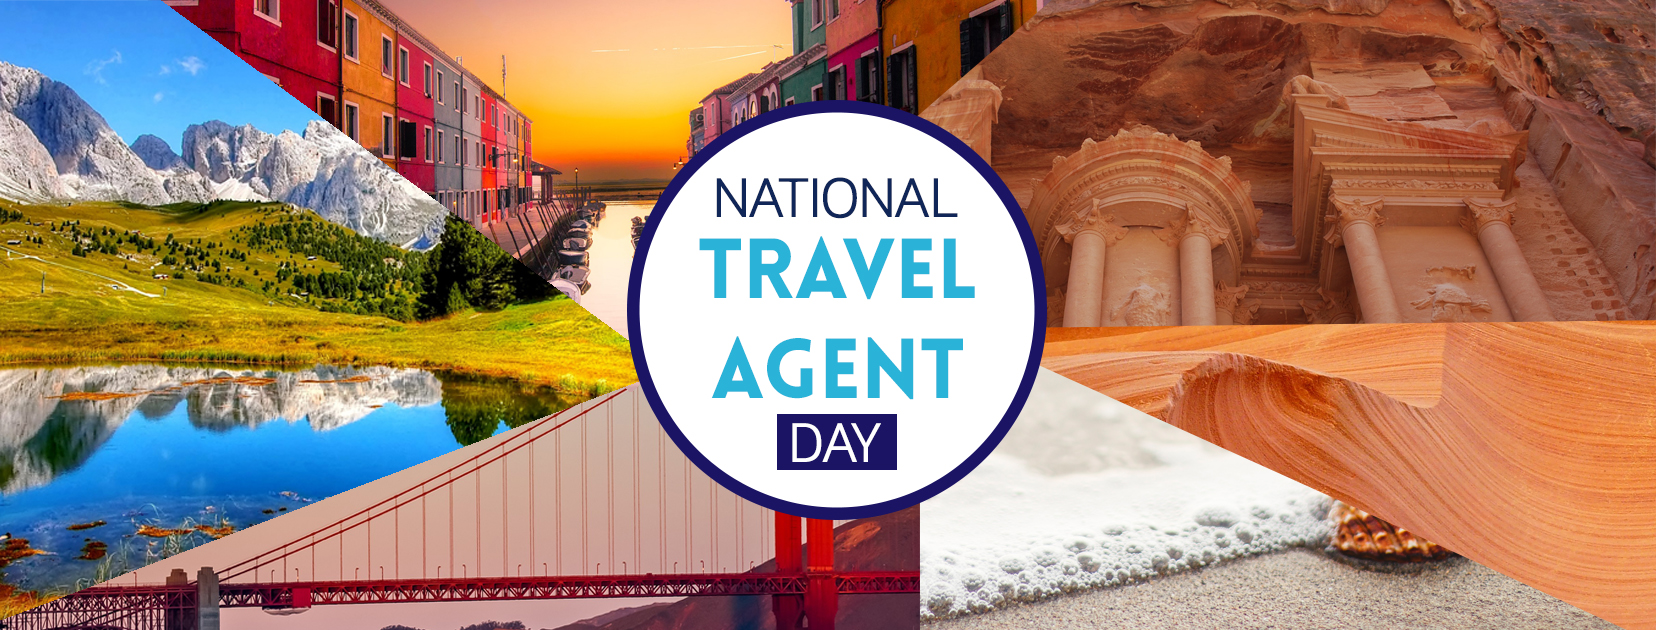 FB COVER_NATIONAL TRAVEL AGENT DAY.jpg